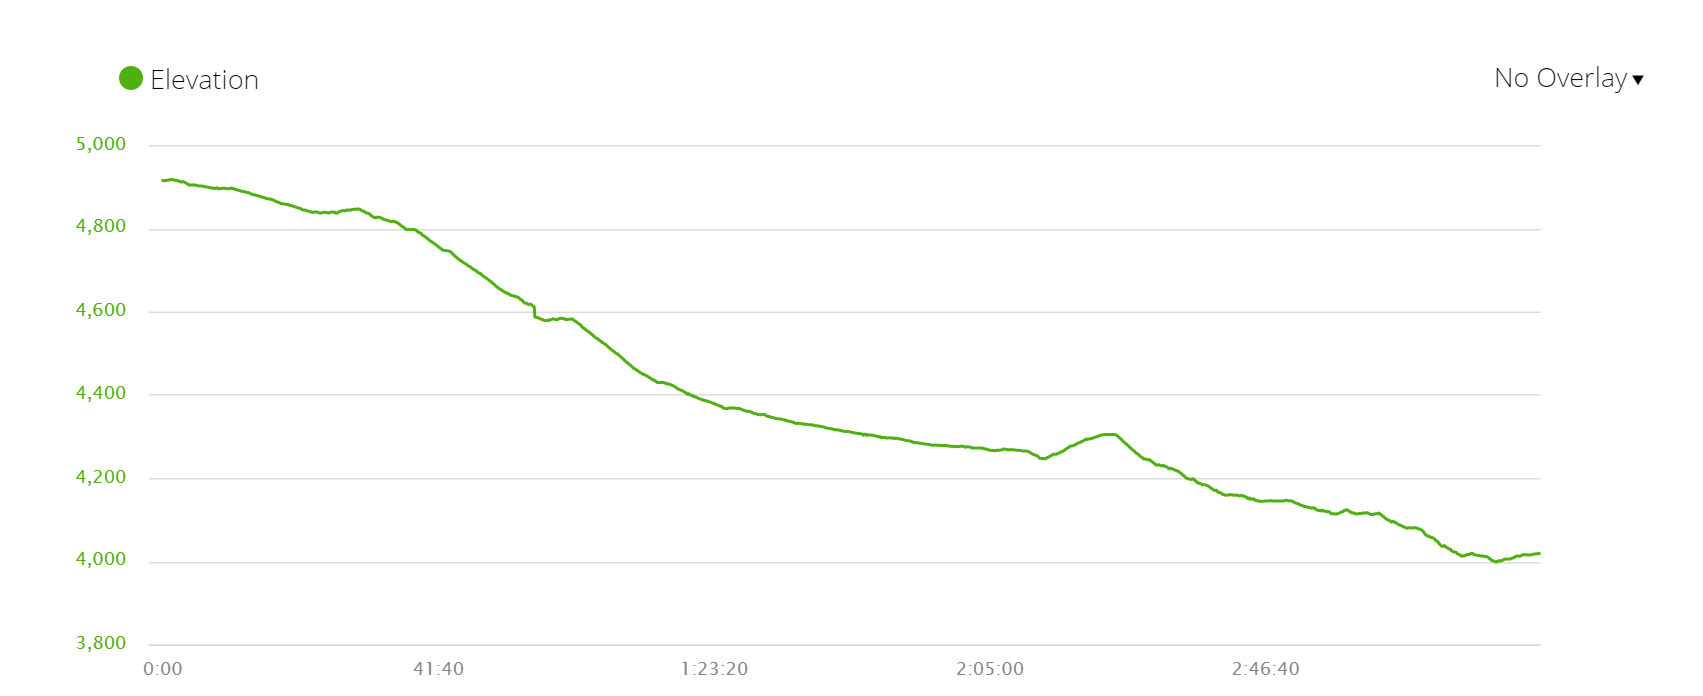 Elevation profile ascent from Lobuche to Pangboche